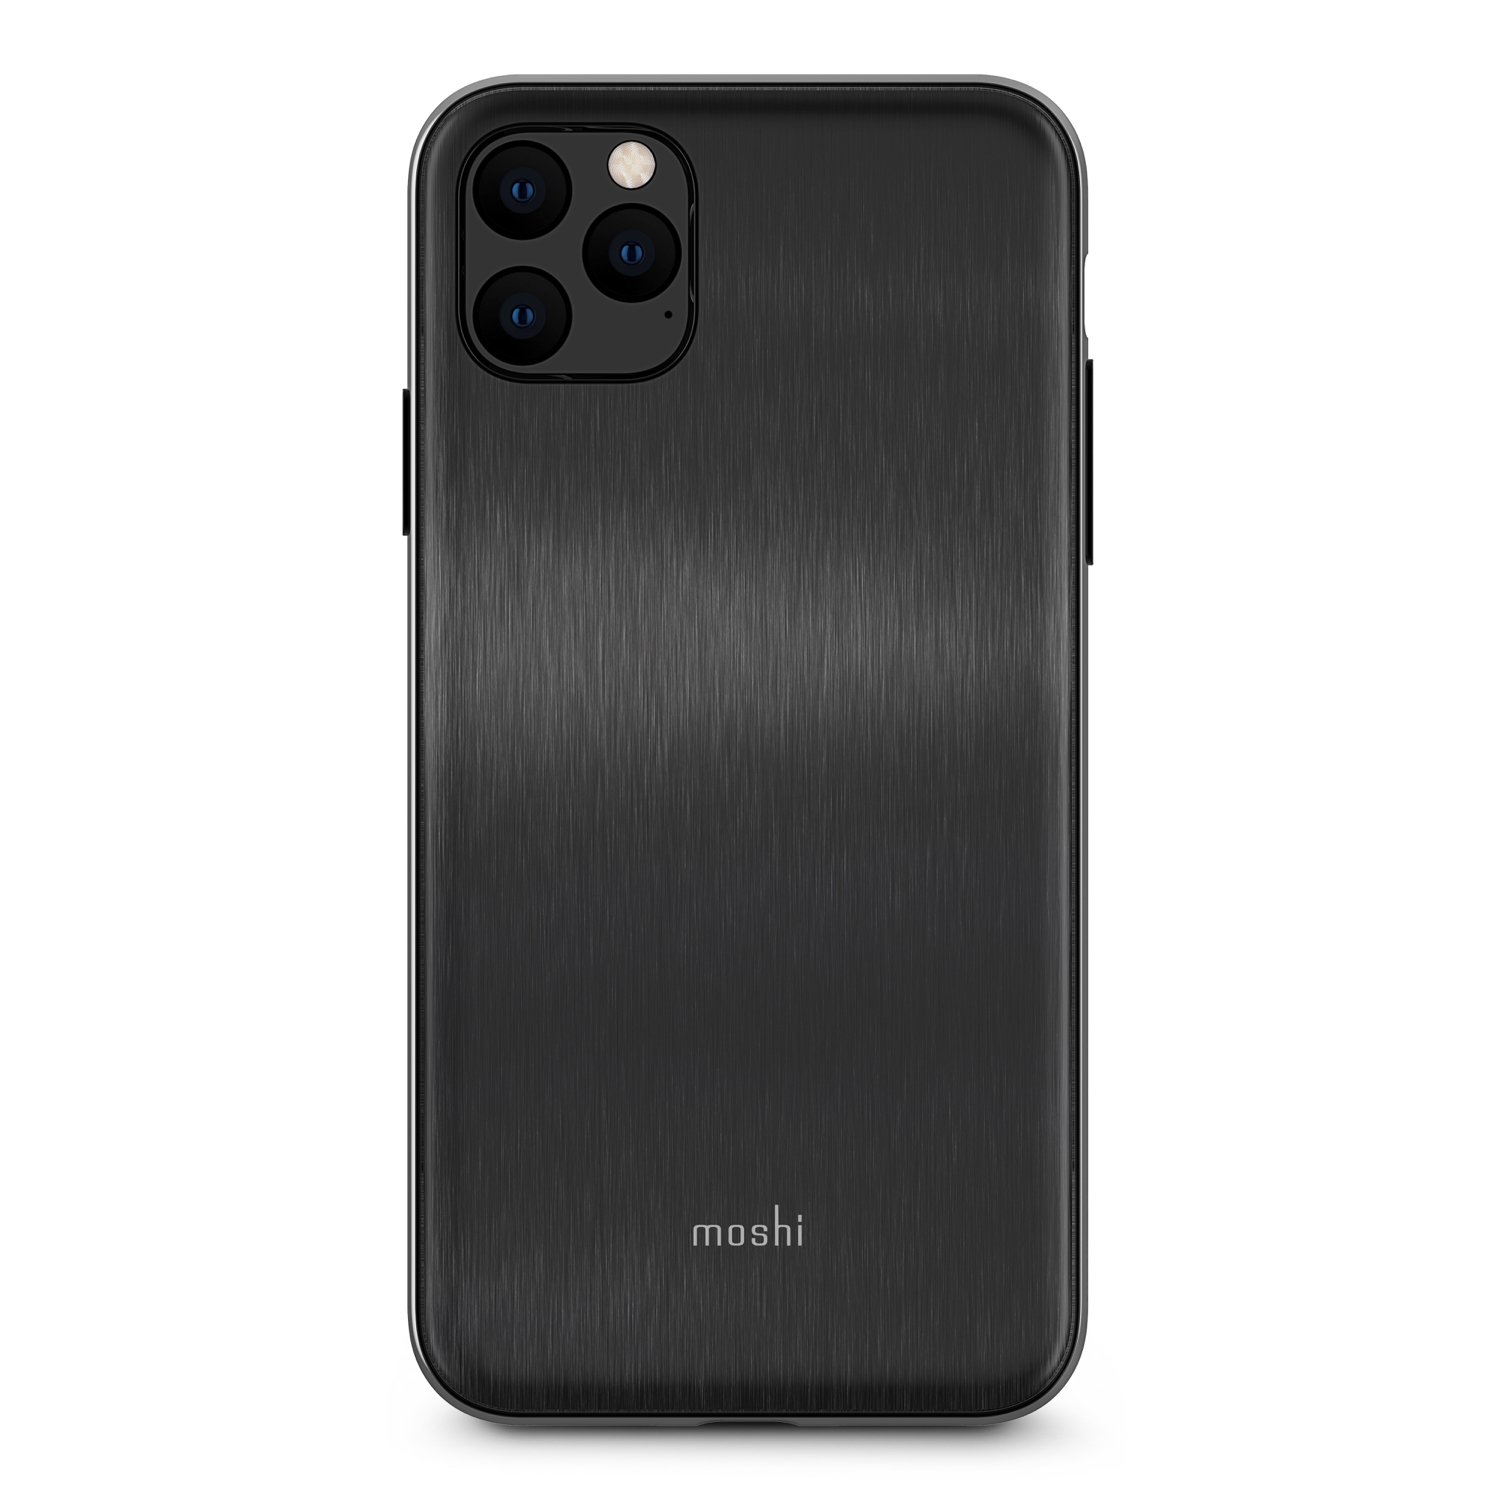 Moshi iGlaze Case for iPhone 11 Pro Max